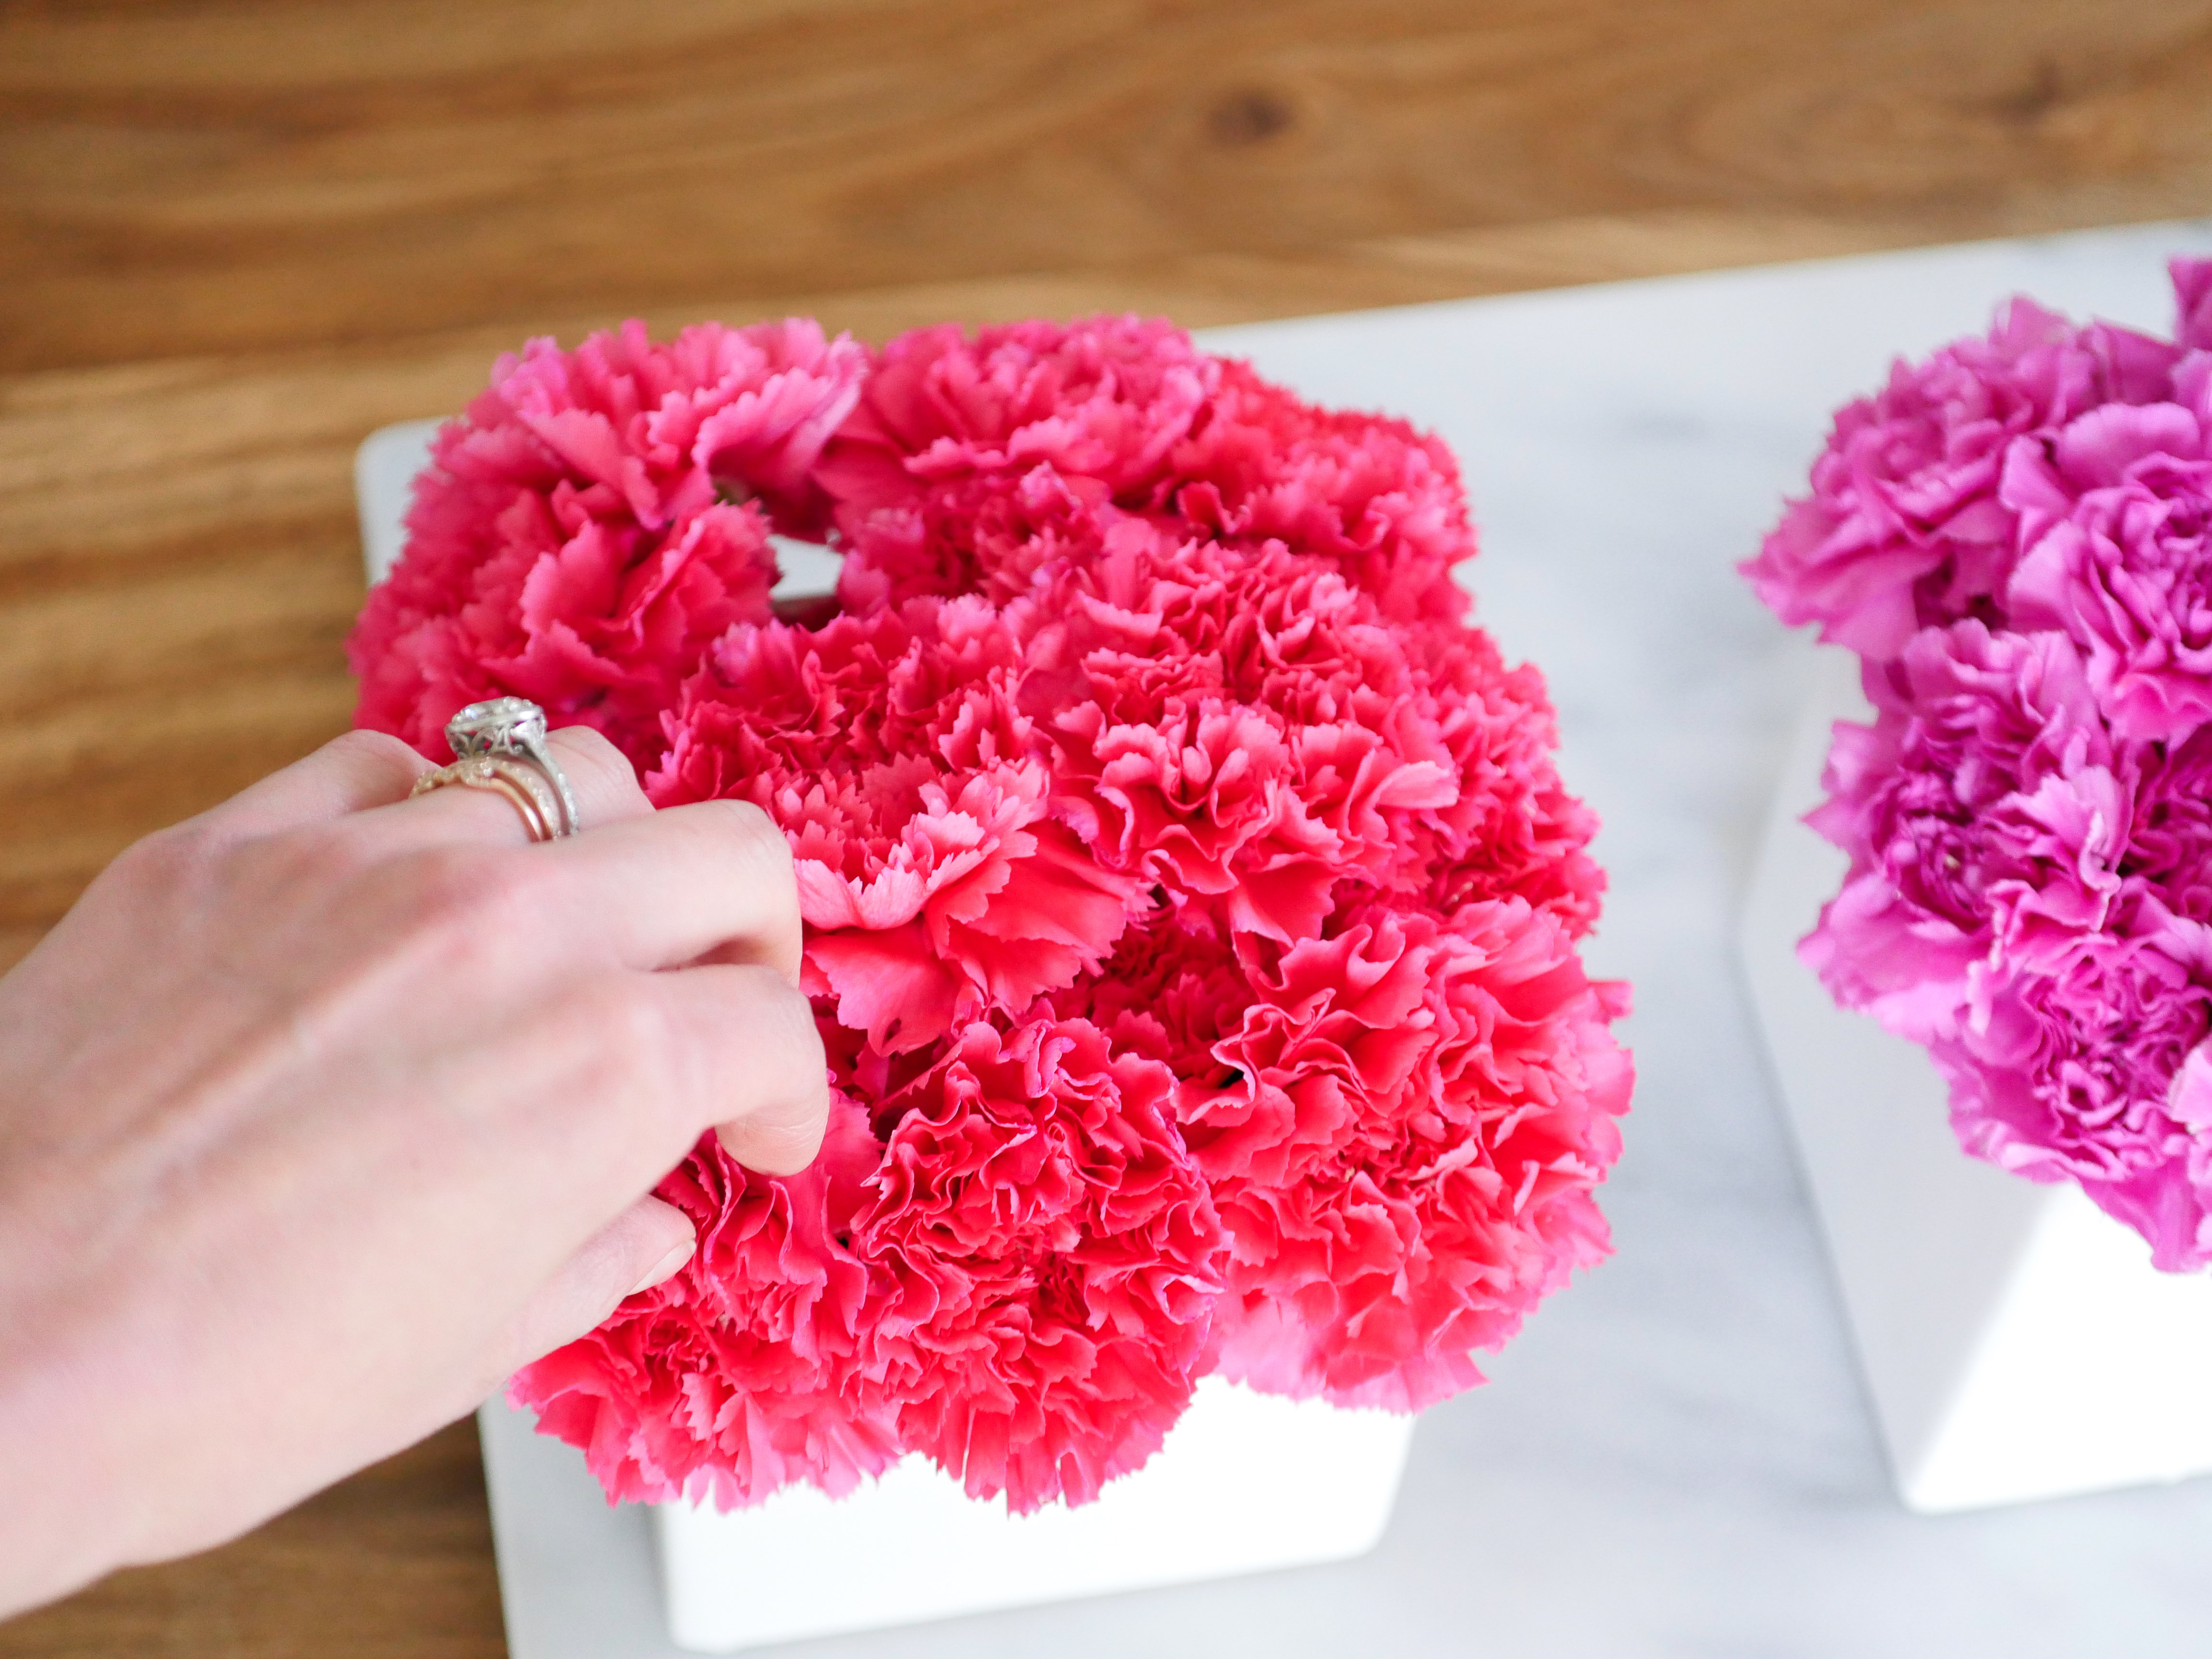 Ombré Carnations - Happily Eva After